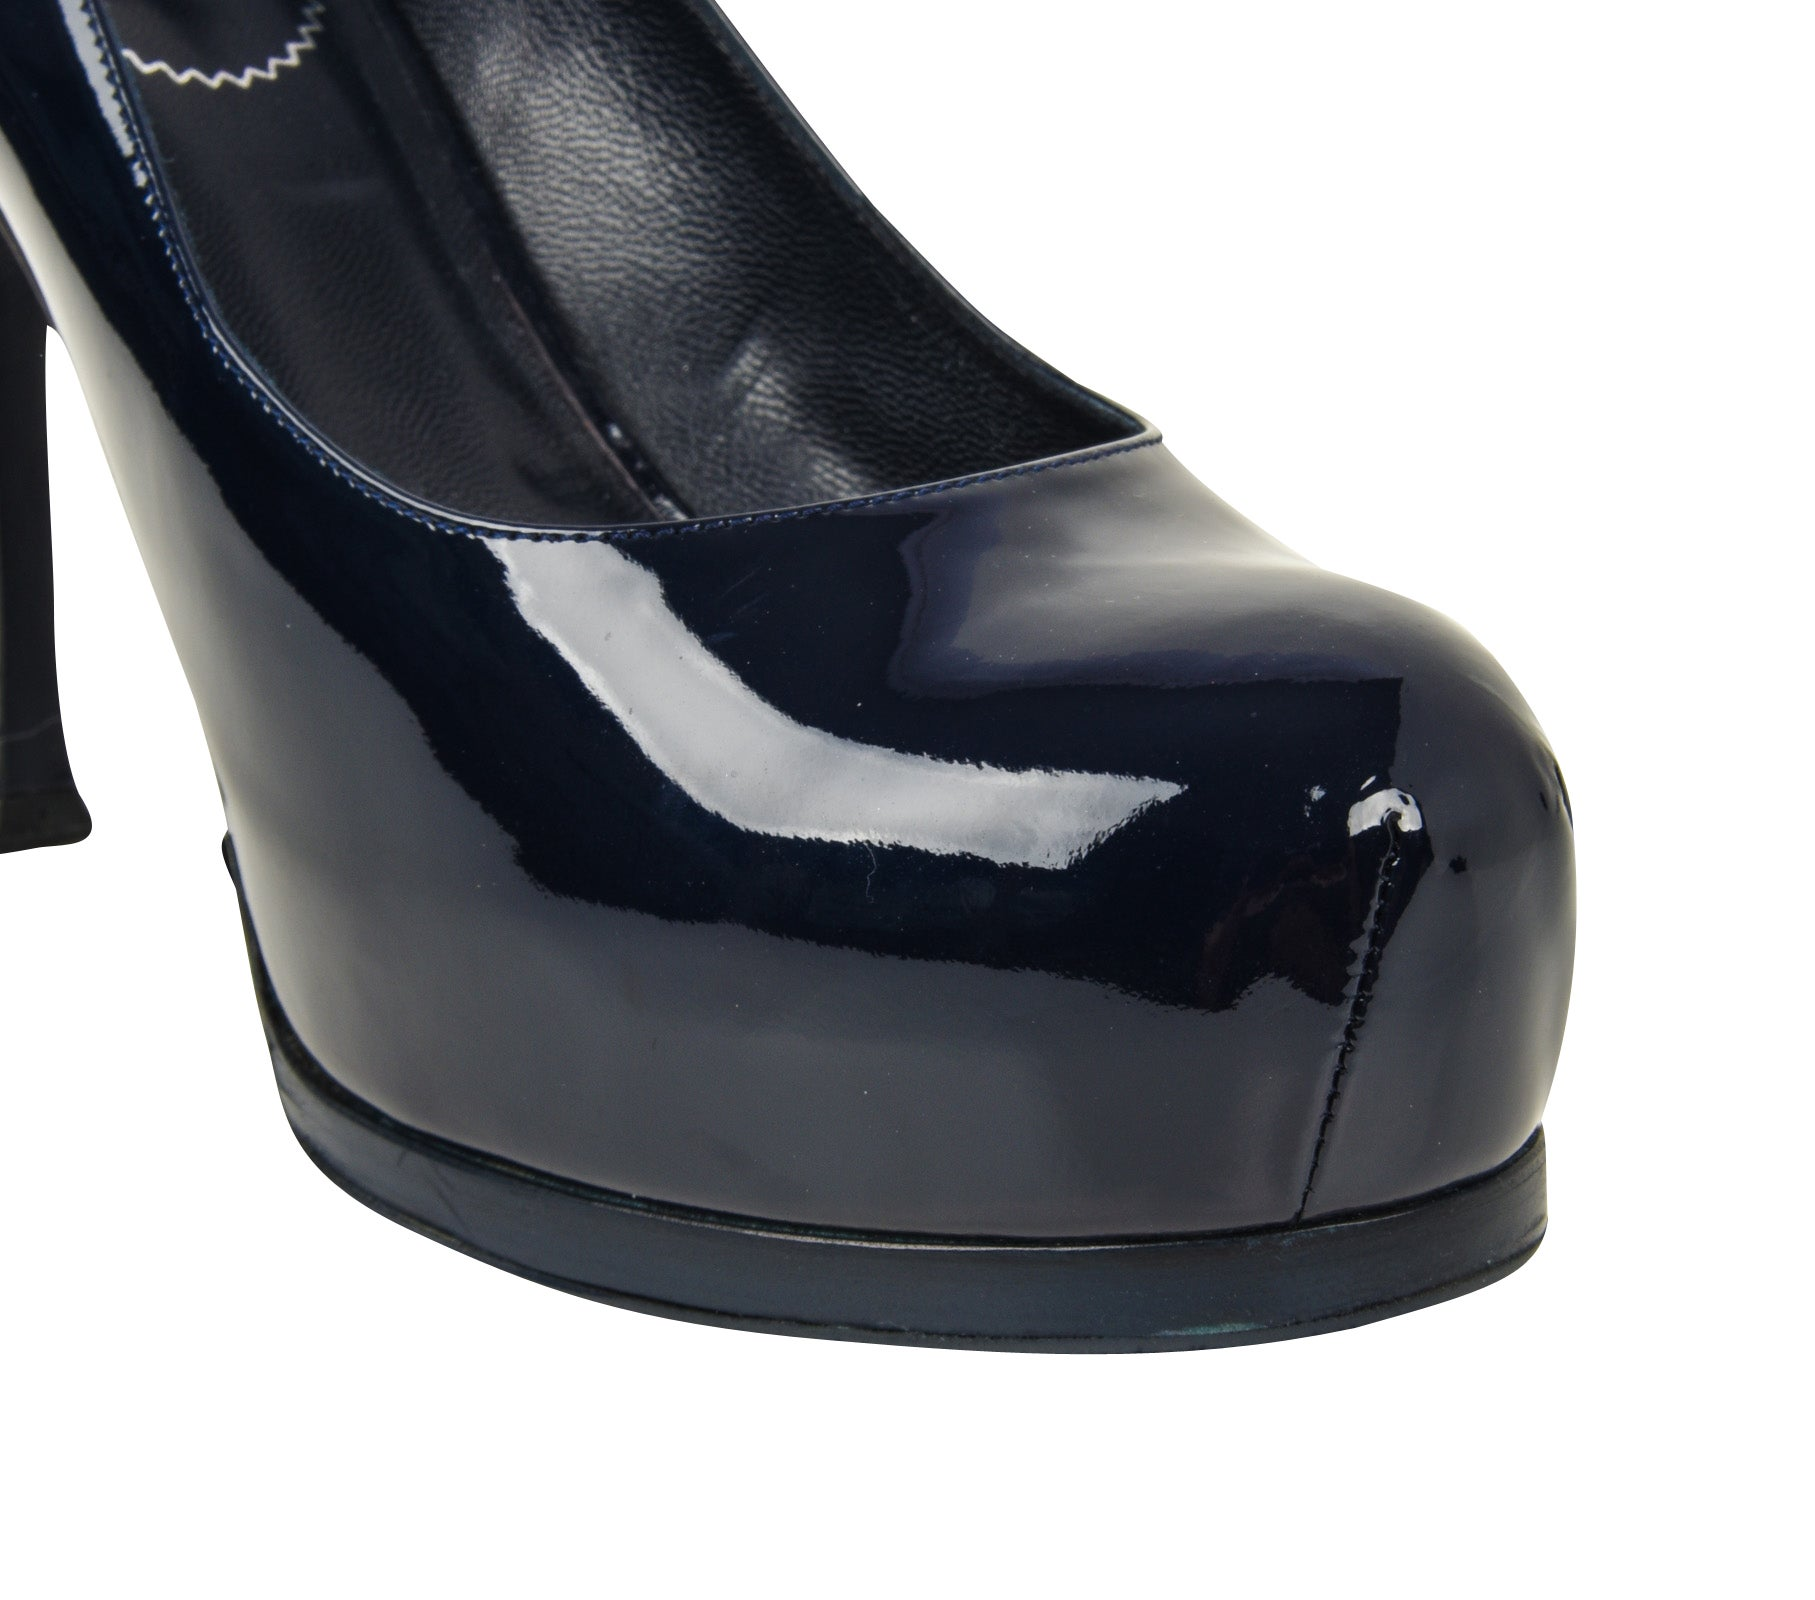 669a7cf7ddb YSL Saint Laurent Tribute Pump Shoe Navy Blue Patent Leather 39 / 9 New For  Sale at 1stdibs